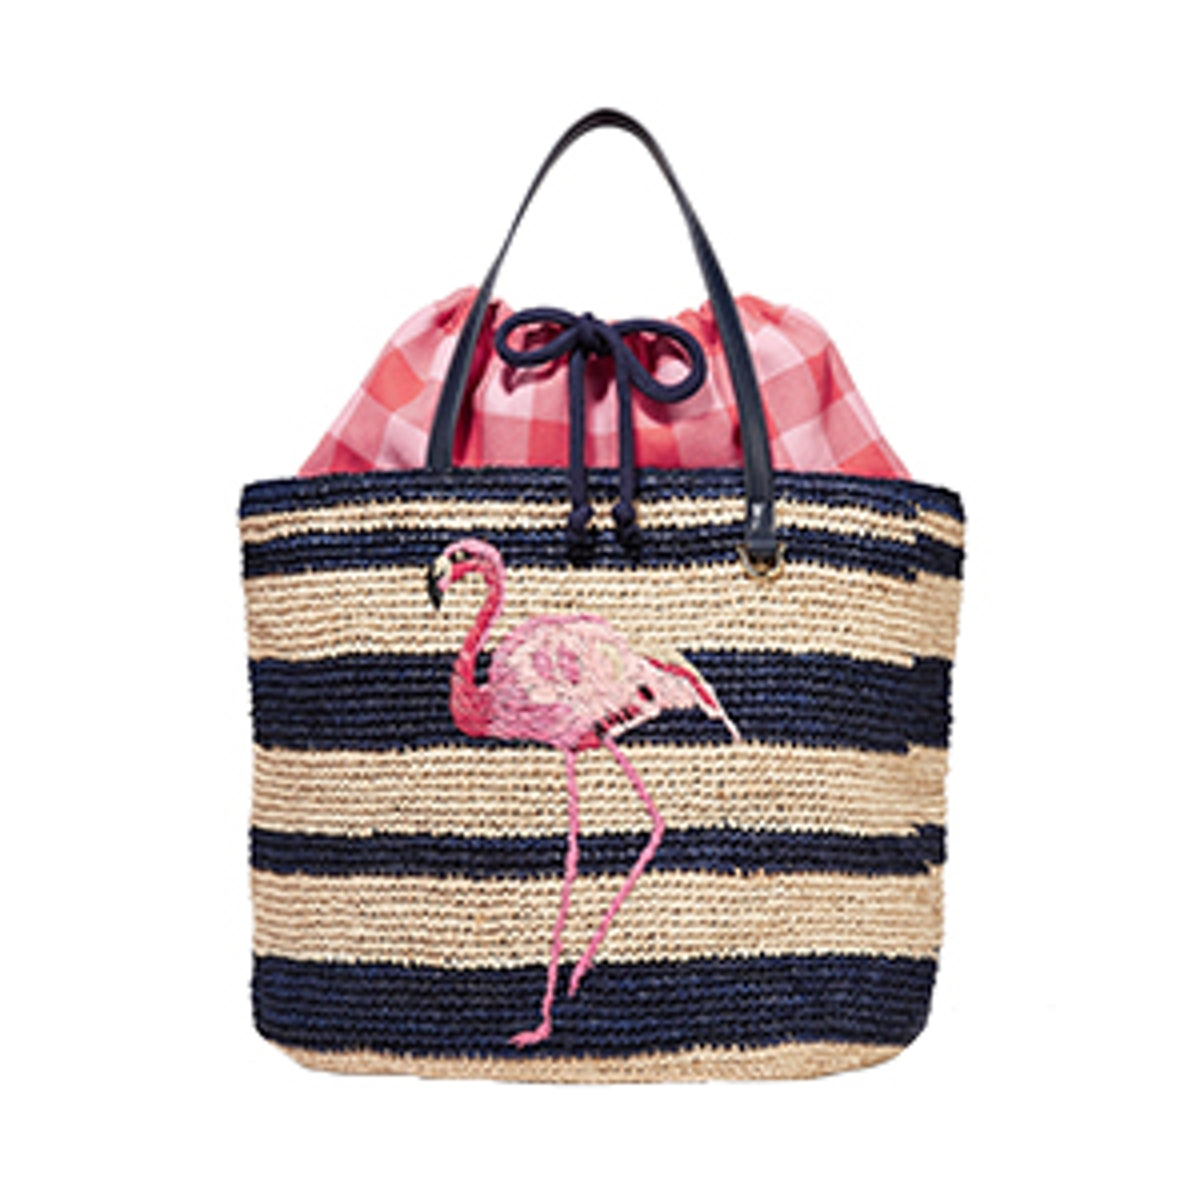 Leather-Trimmed Embroidered Crocheted Straw Tote